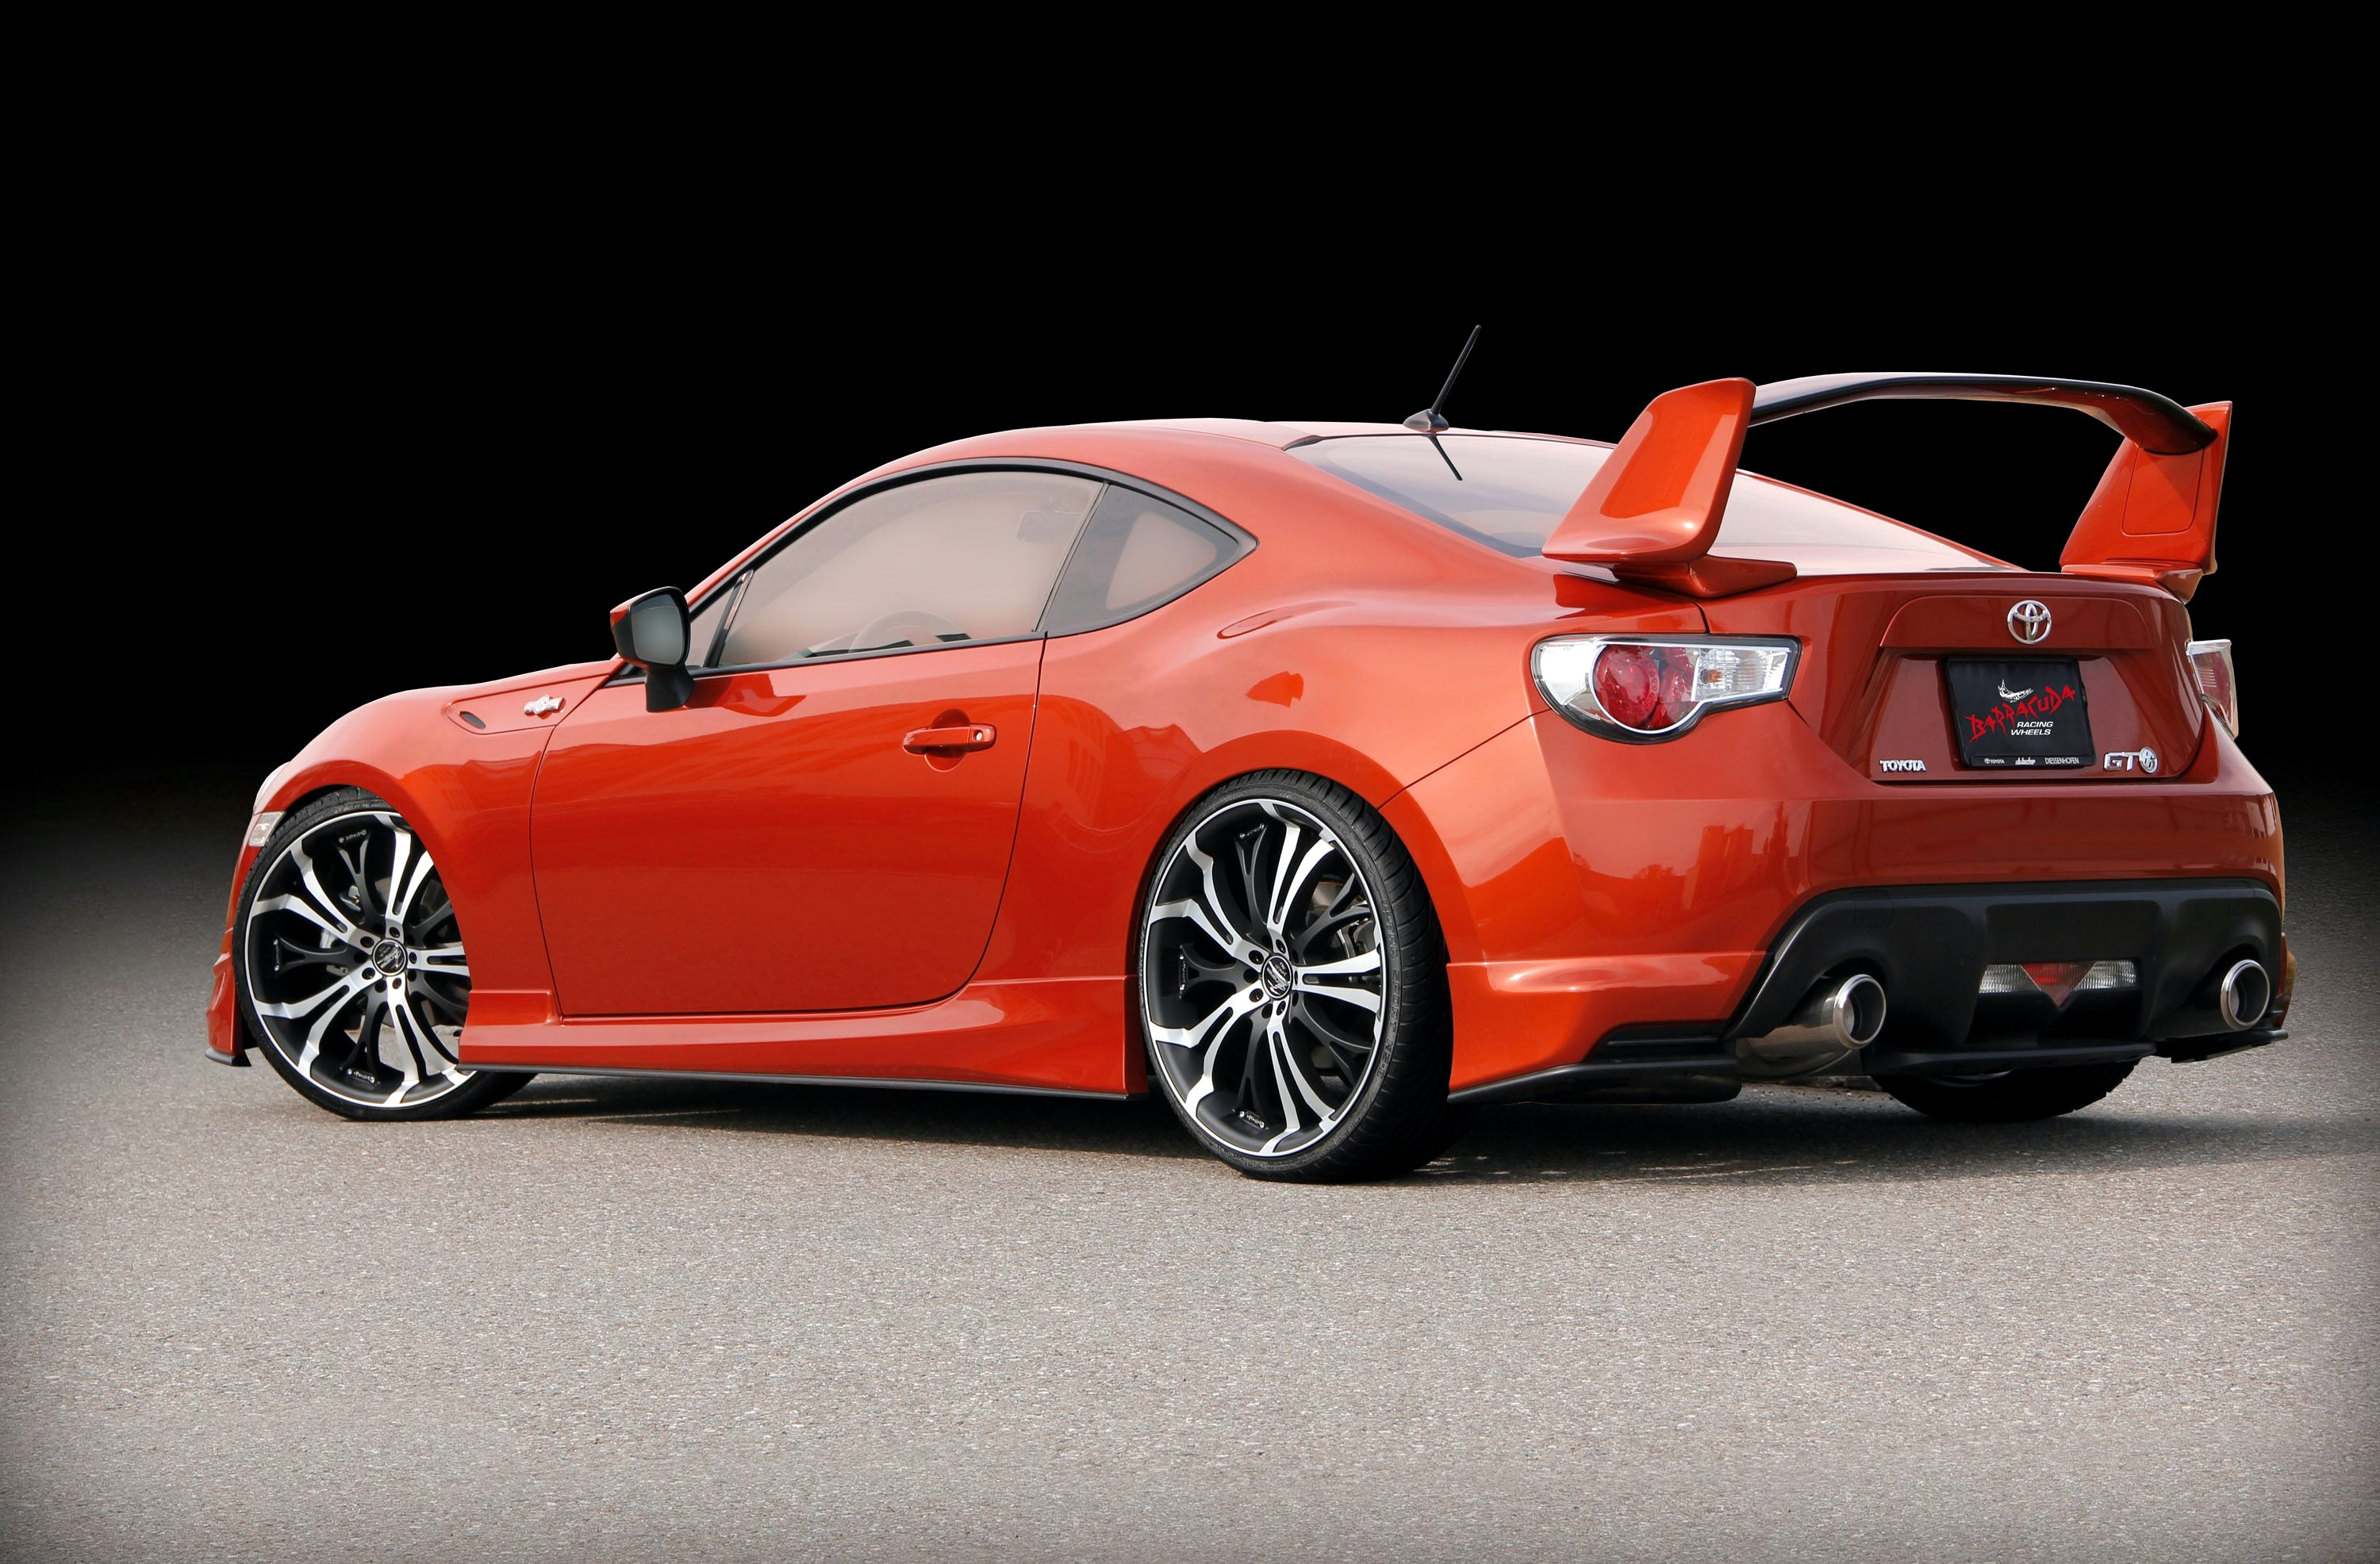 Toyota Gt86 Wallpapers HD Download 3000x1972